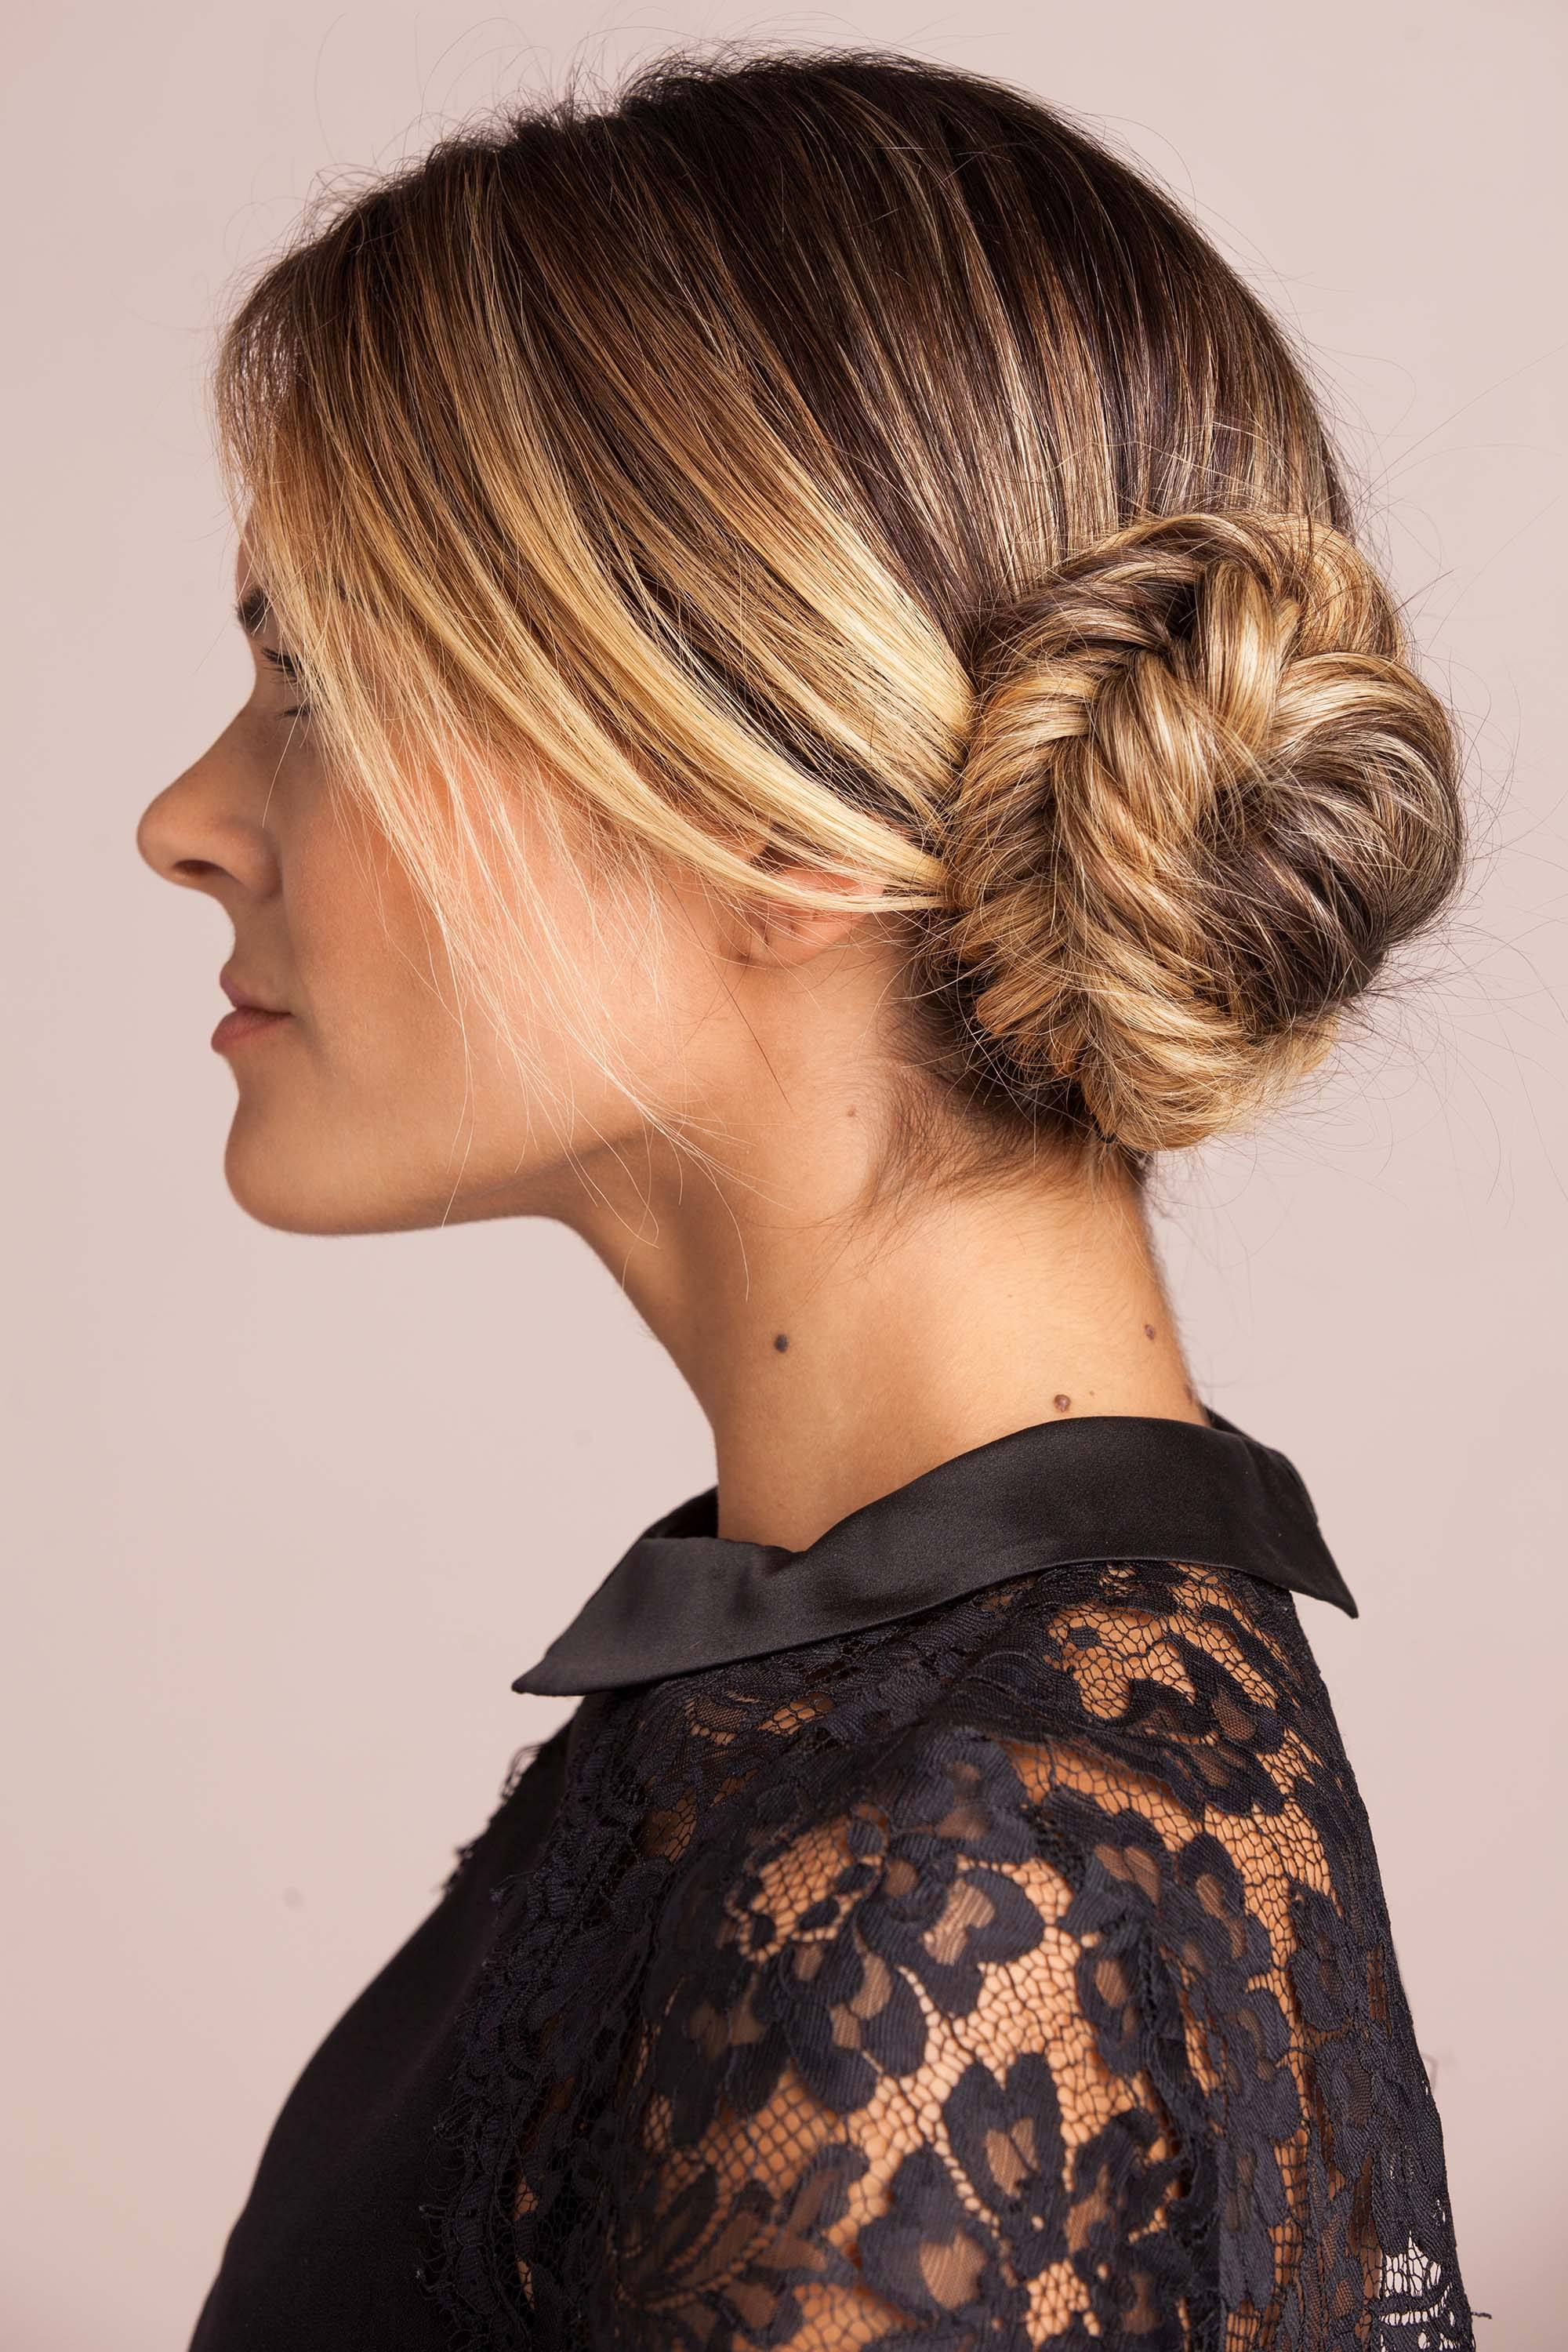 formal hairstyles for long hair fishtail braid bun.